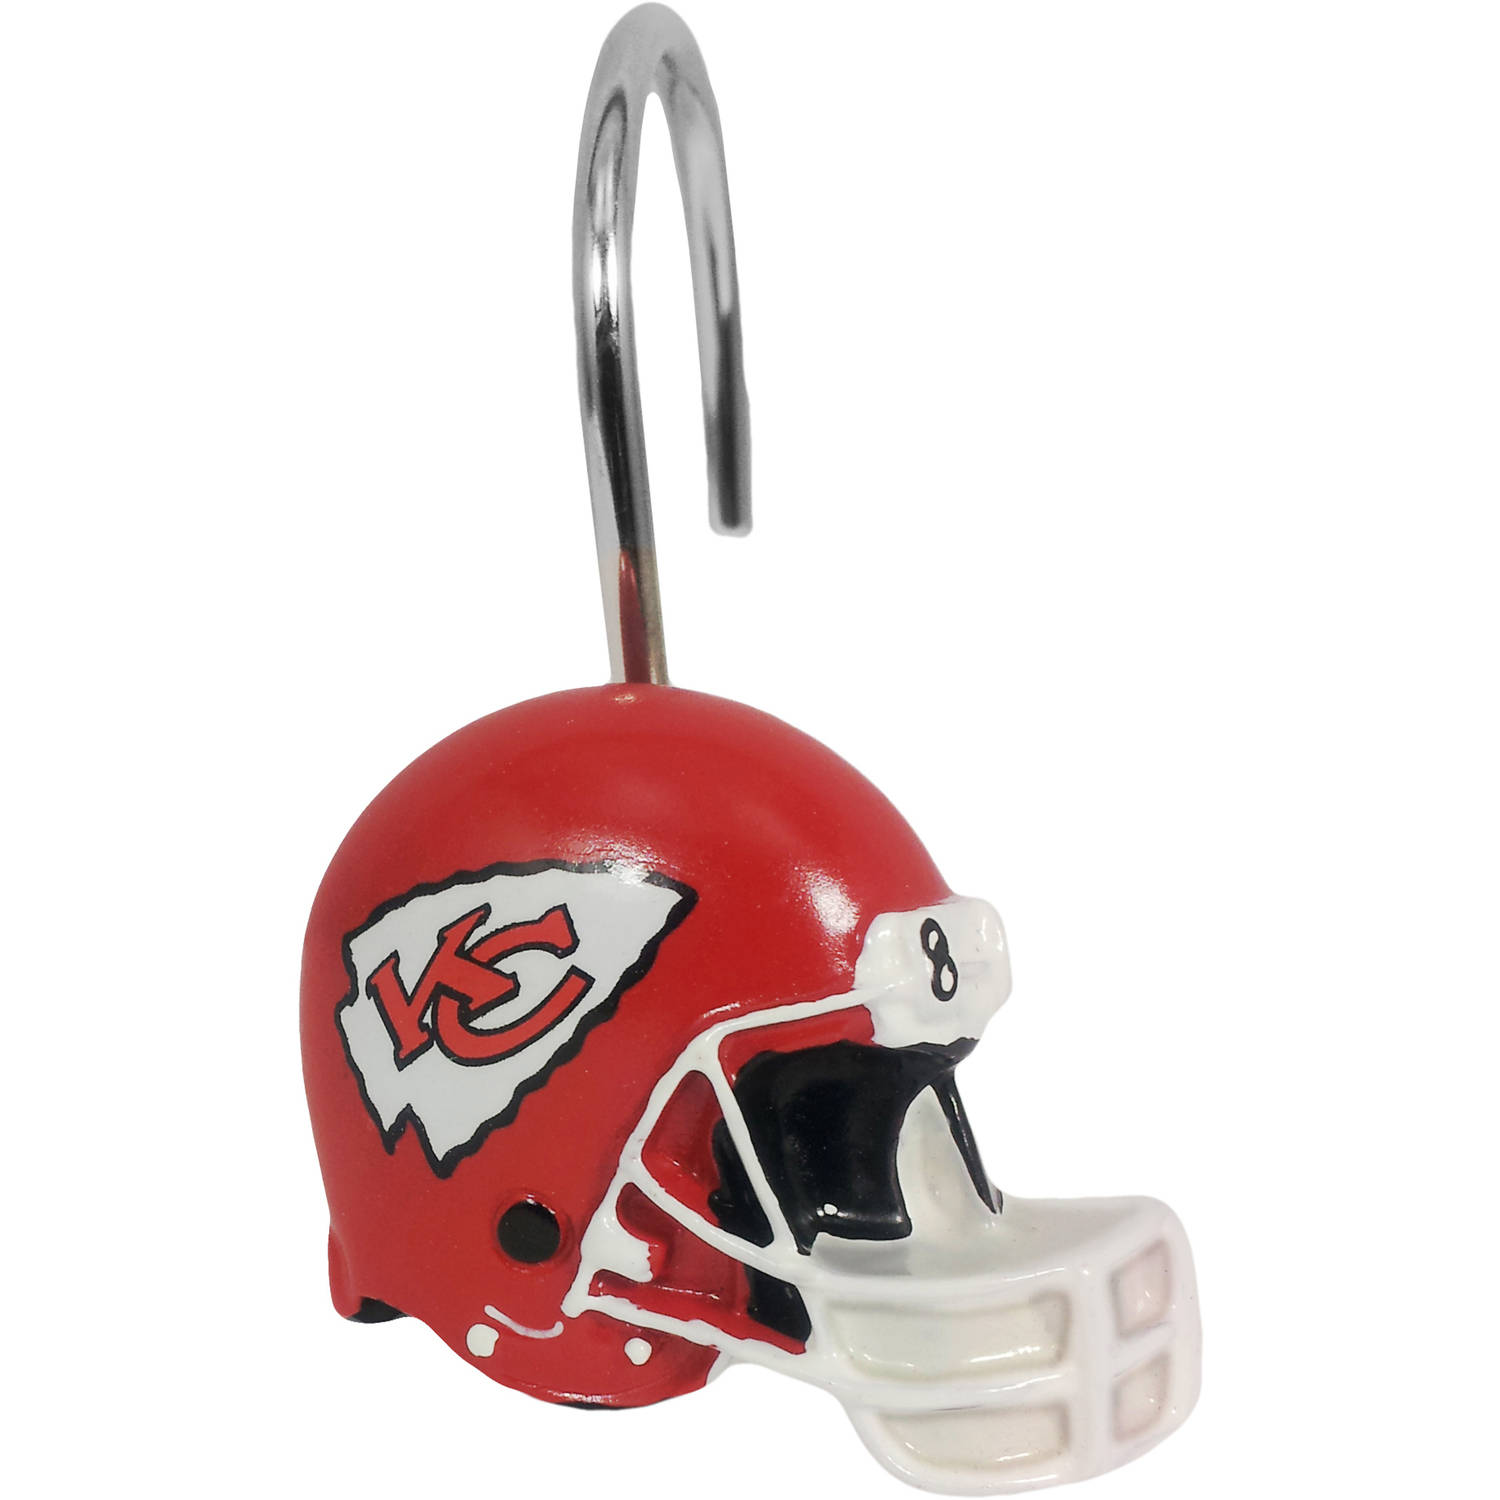 NFL Kansas City Chiefs Shower Curtain Ring Set, 12 Piece